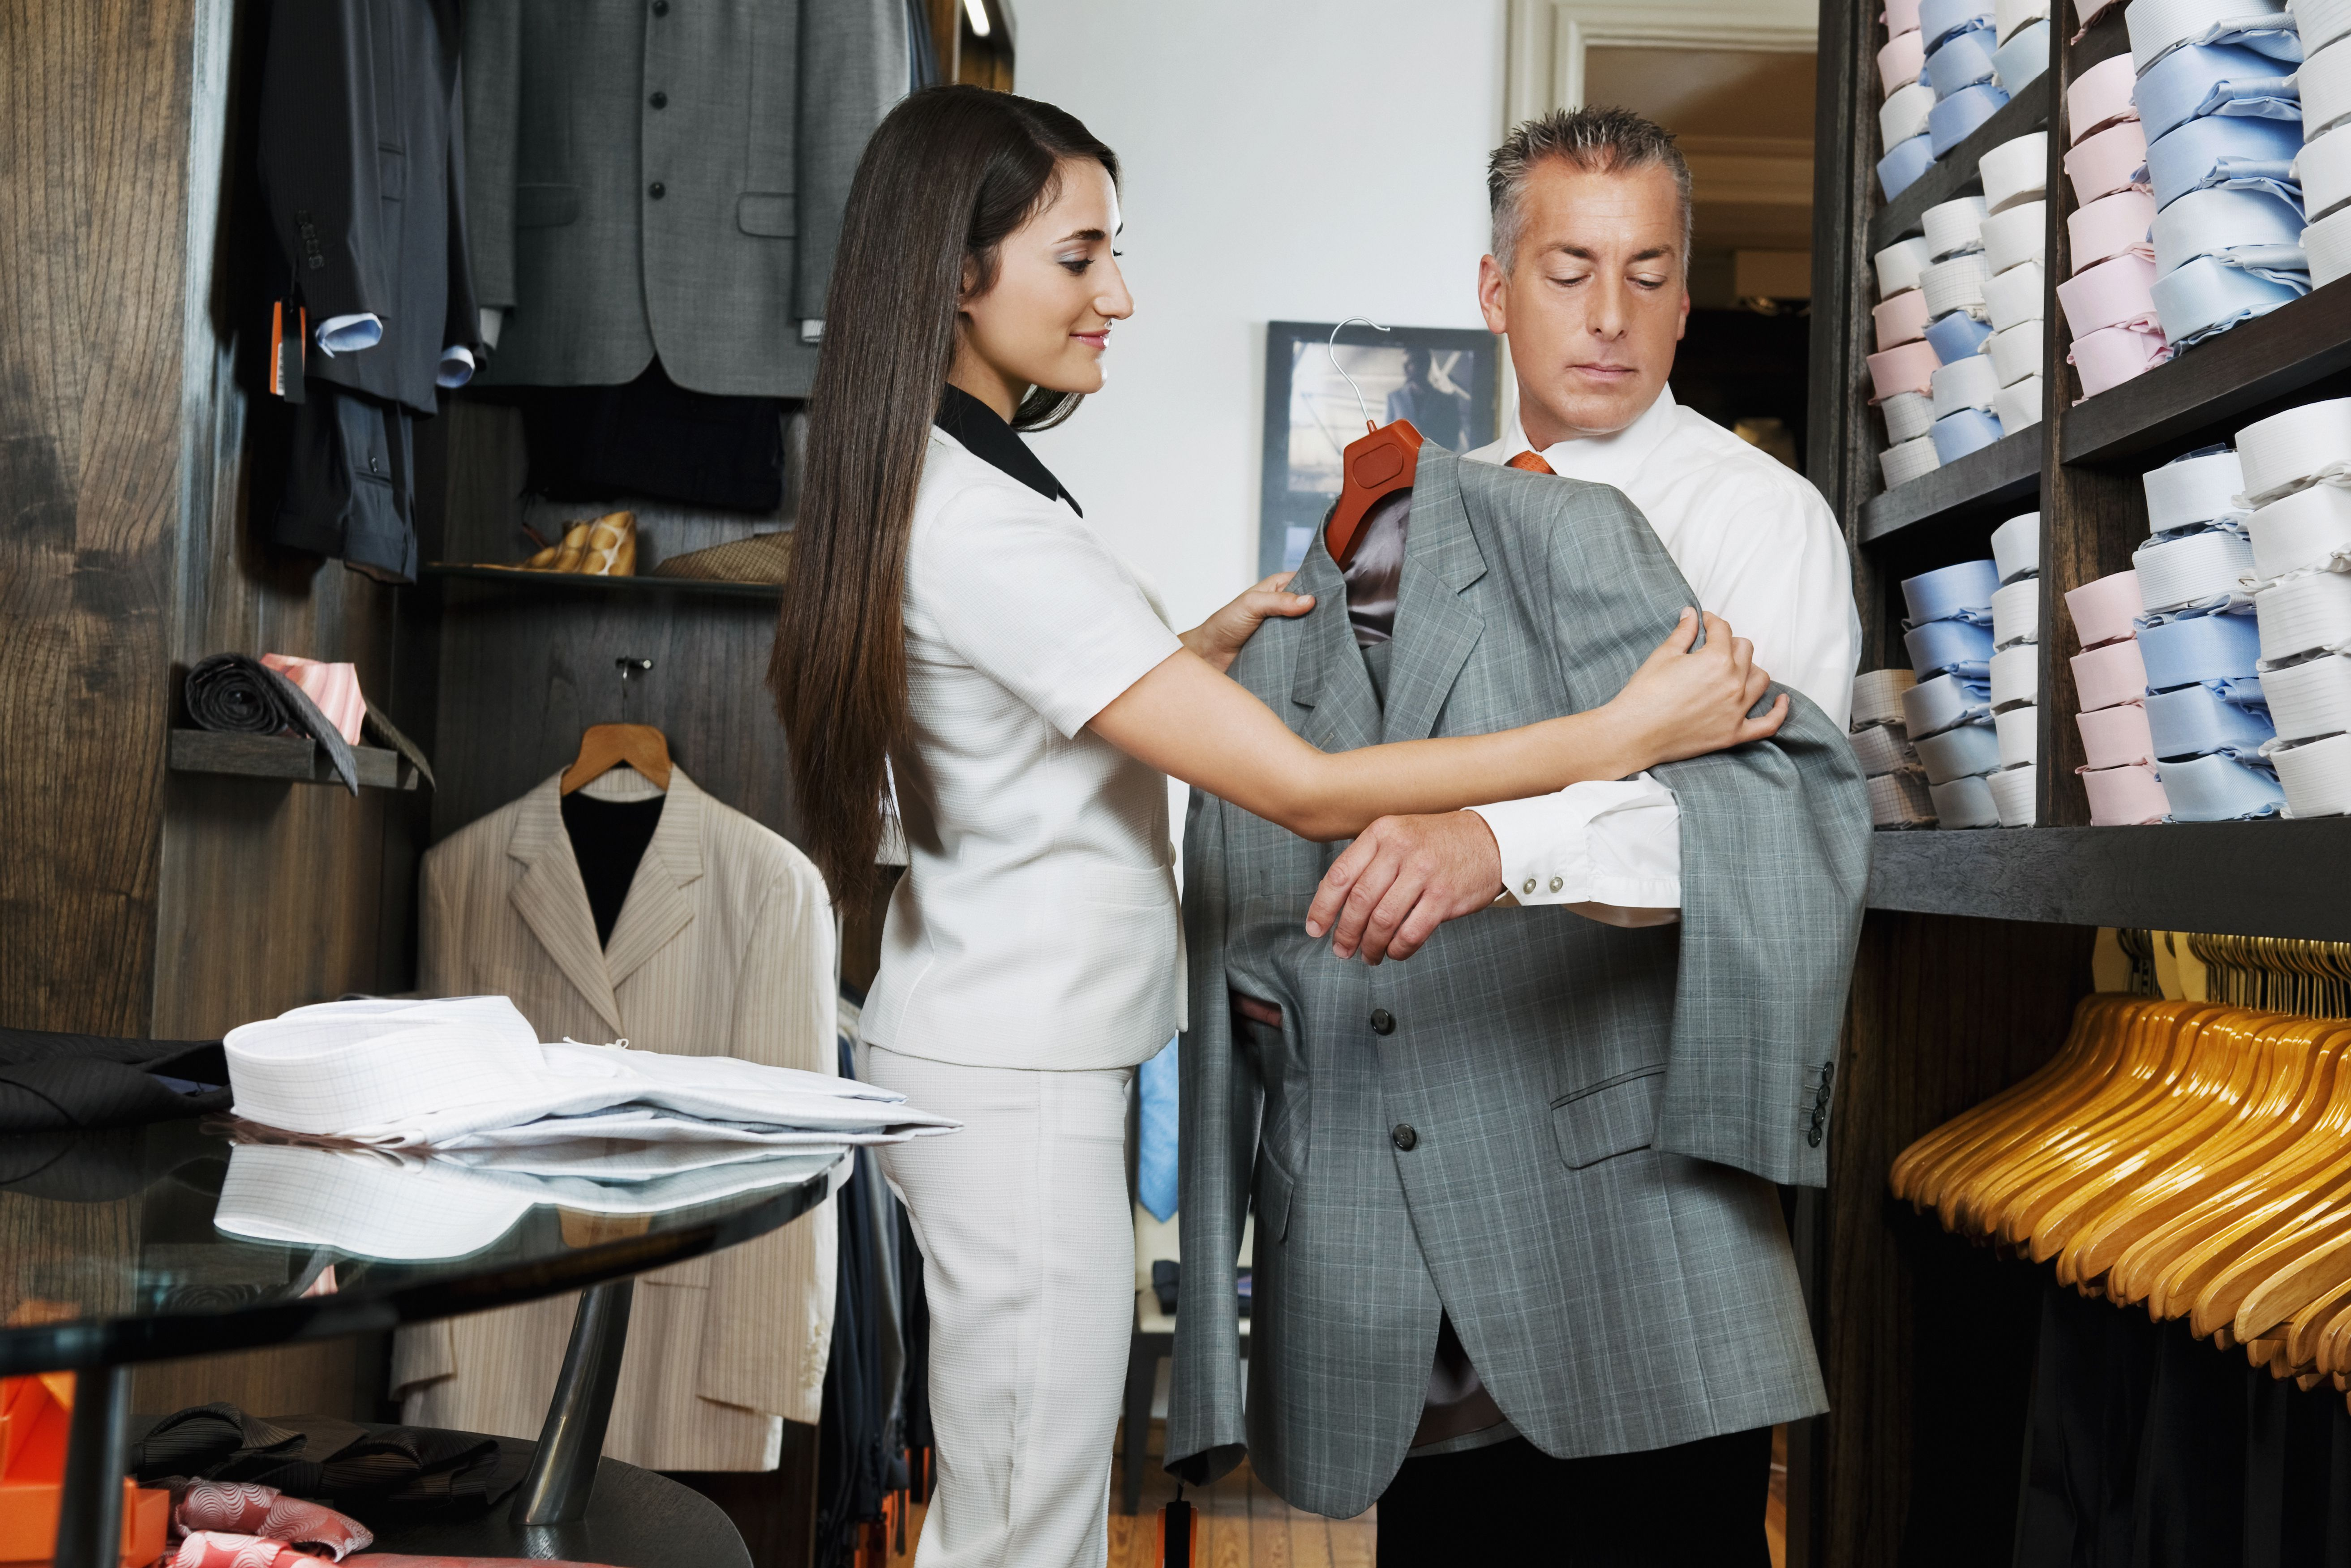 Saleswoman assisting a businessman in a clothing store